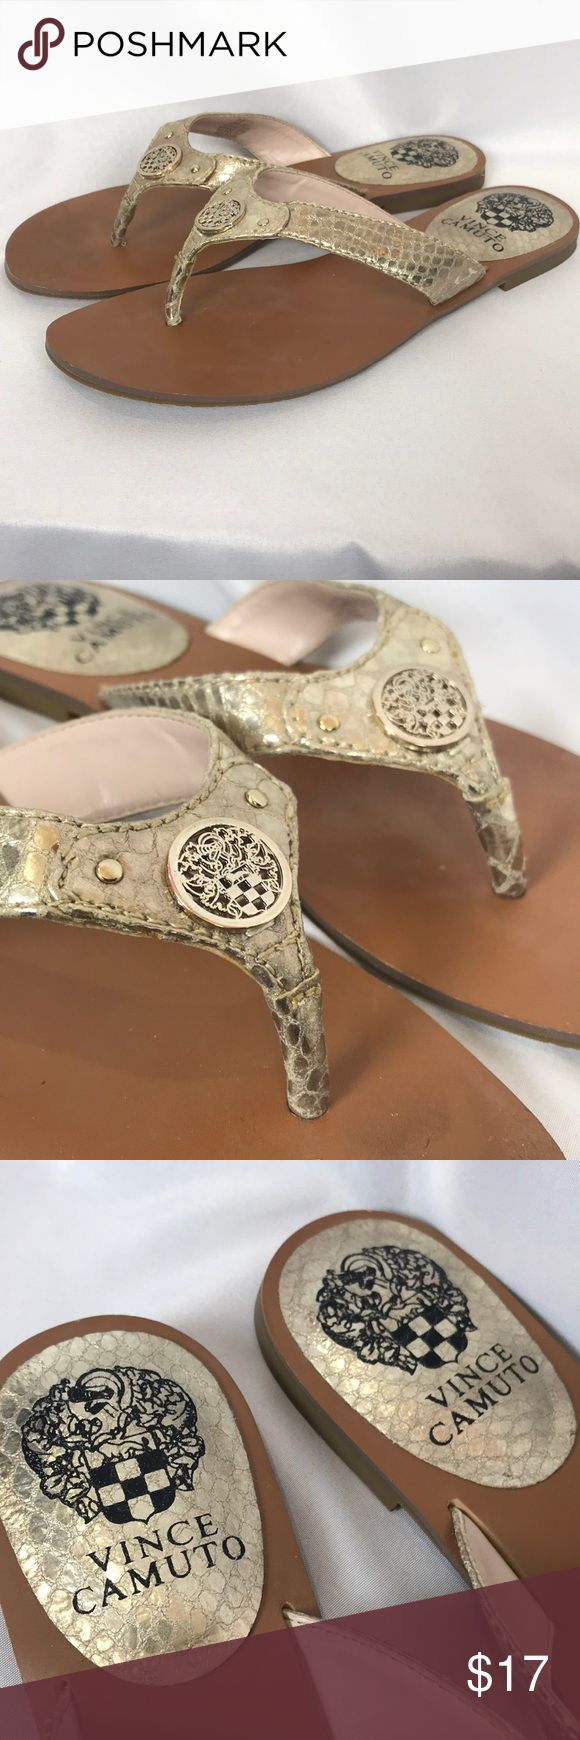 Vince Camuto gold leather flip flops sandals 6.5 Excellent condition. Very lightly worn. Clean and odor free from smoke-free home. Women's size 6.5 B. Vince Camuto Shoes Sandals